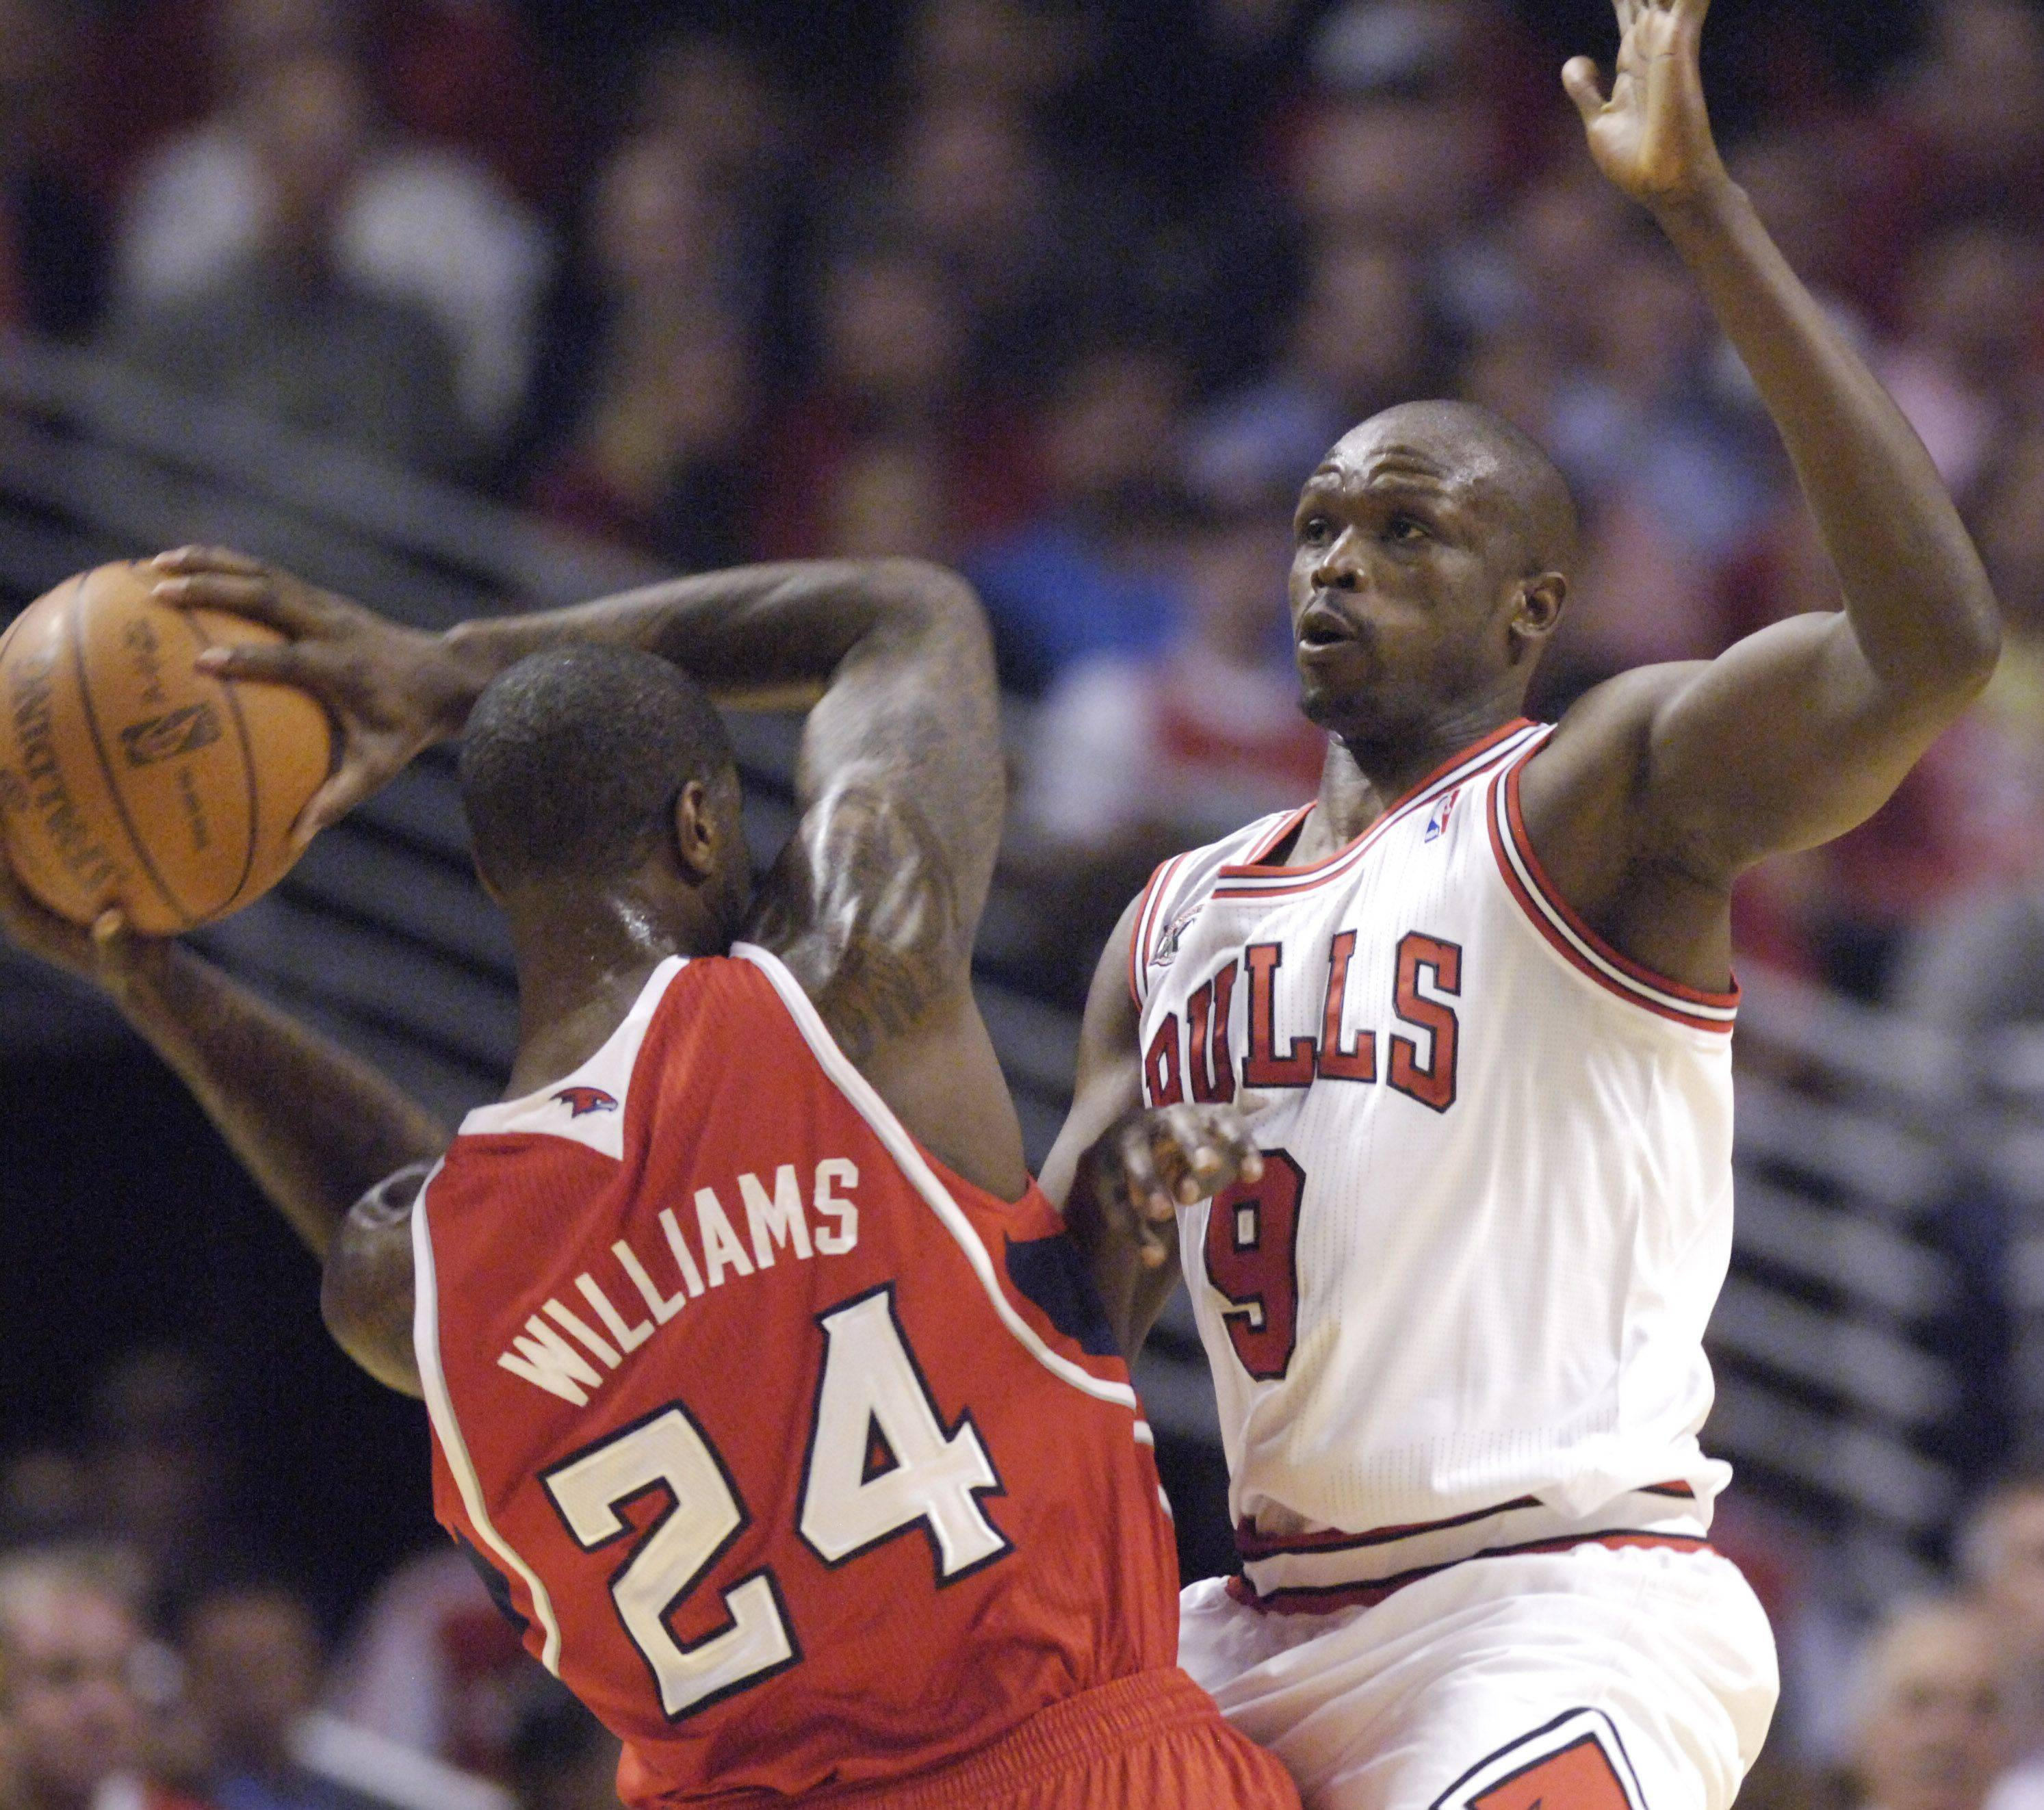 Luol Deng of the Bulls closely guards Marvin Williams of the Hawks.